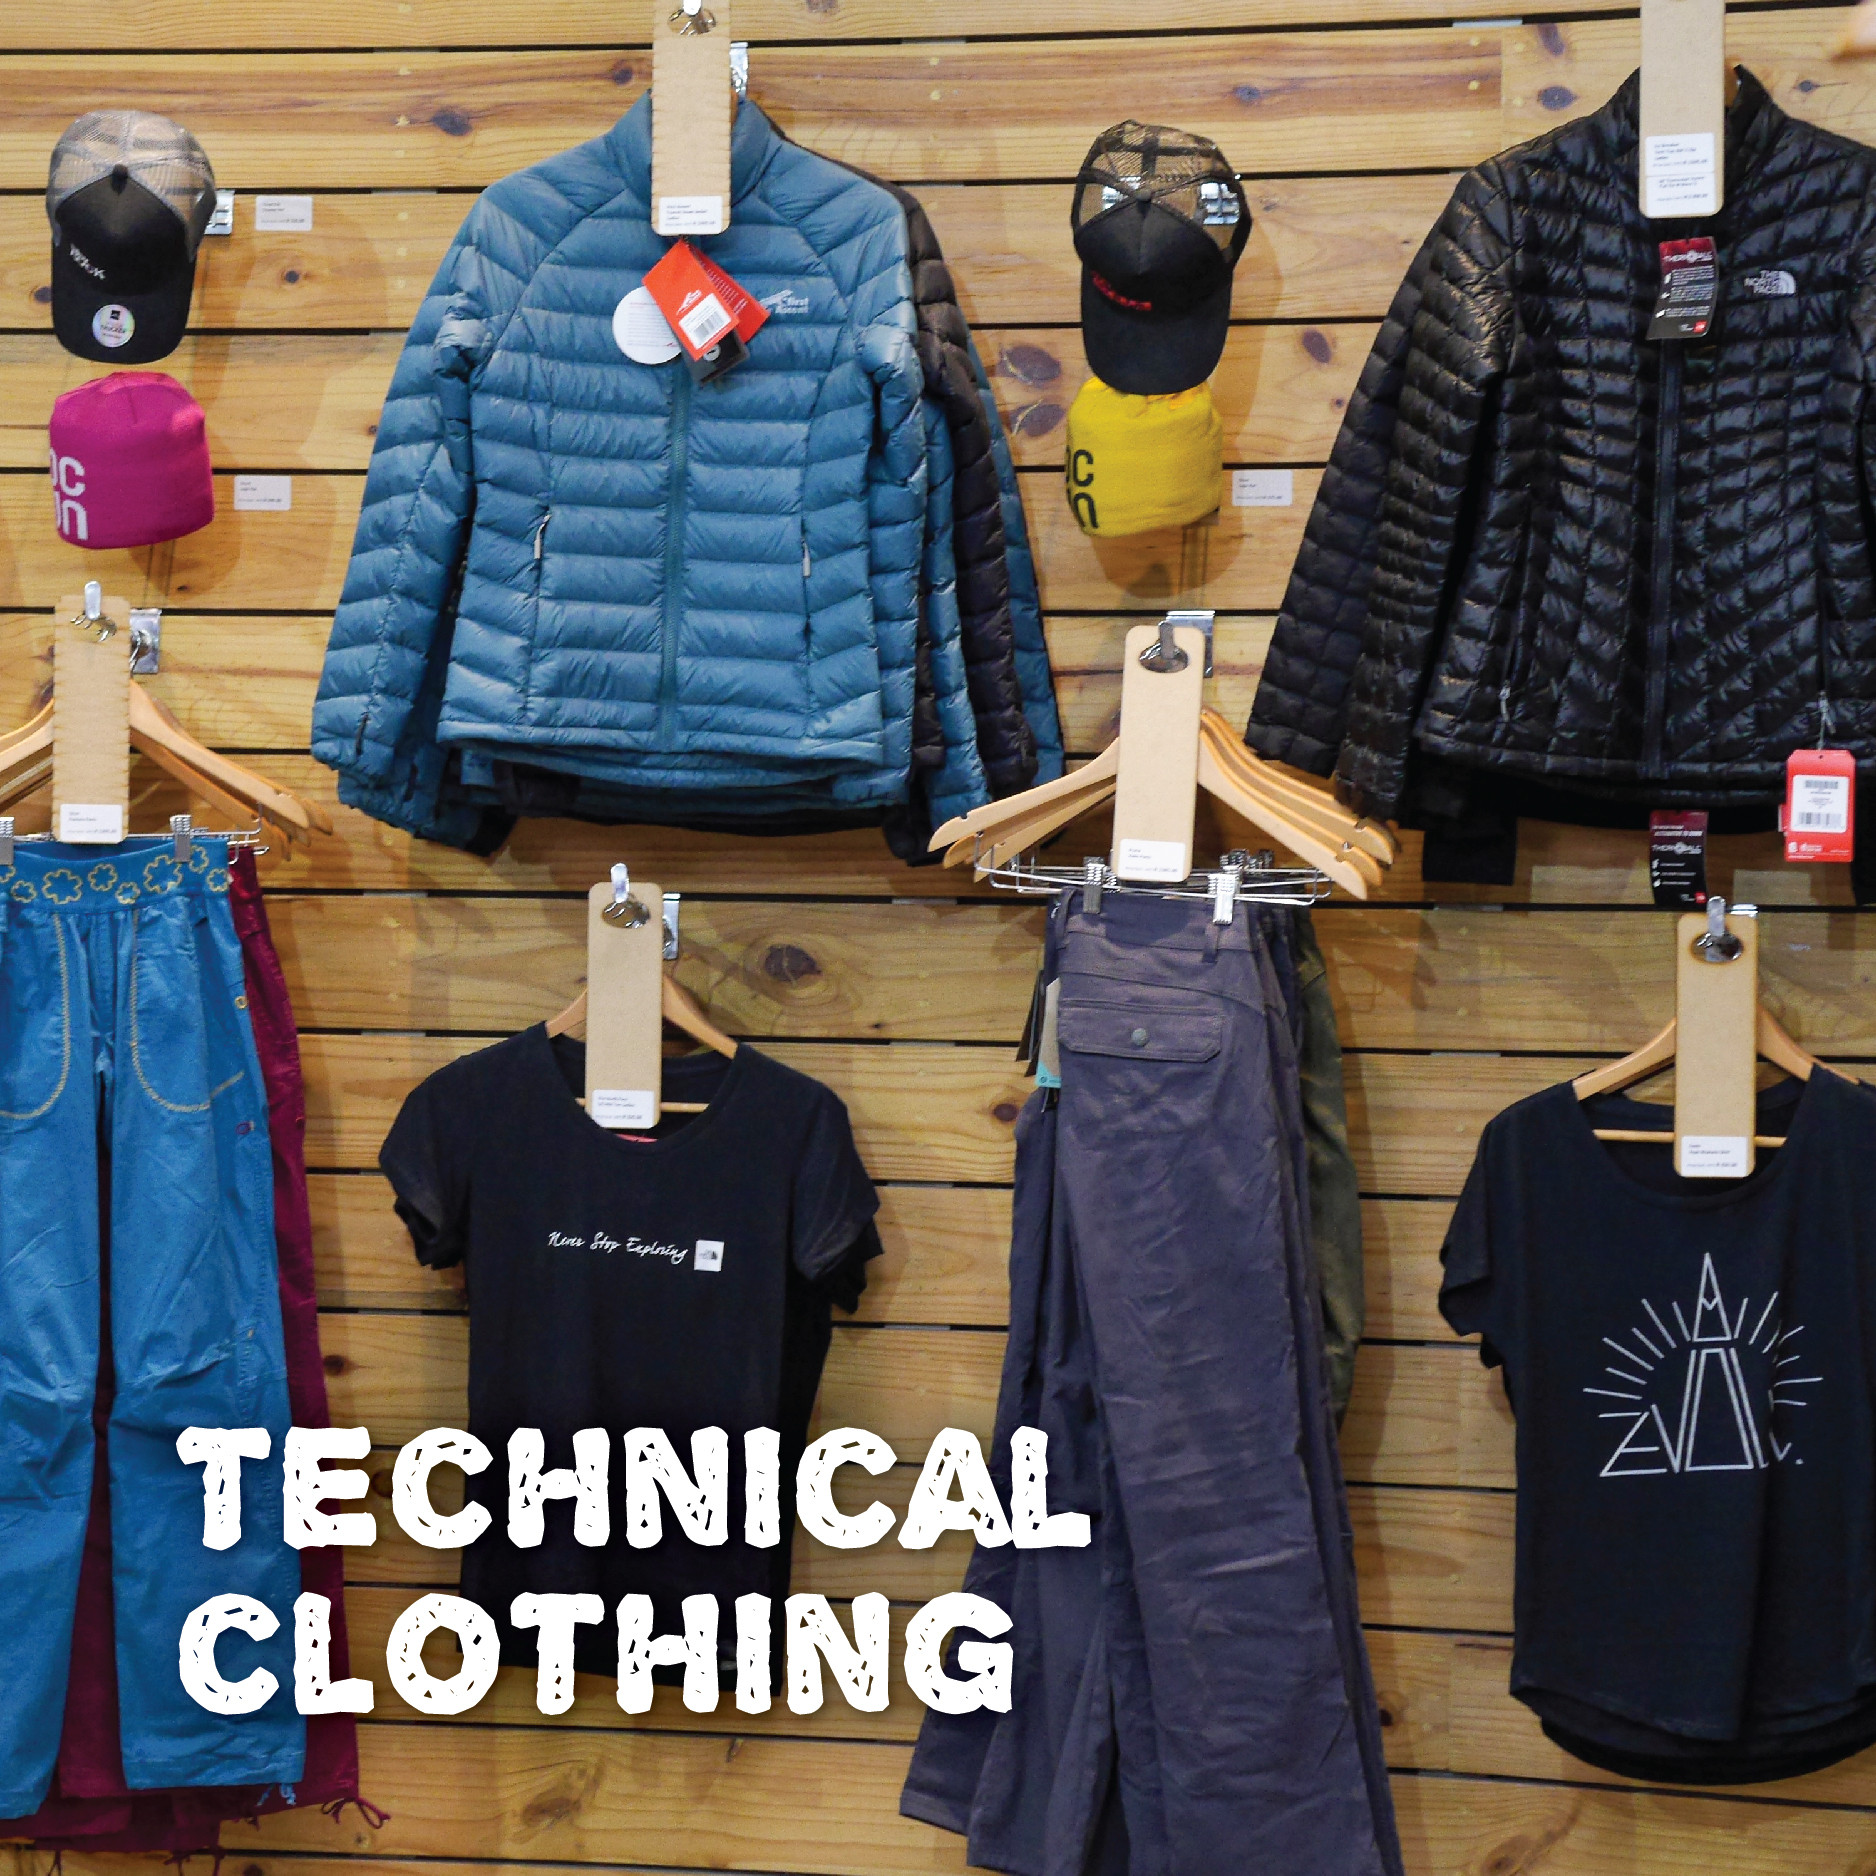 Why do I need technical clothing?